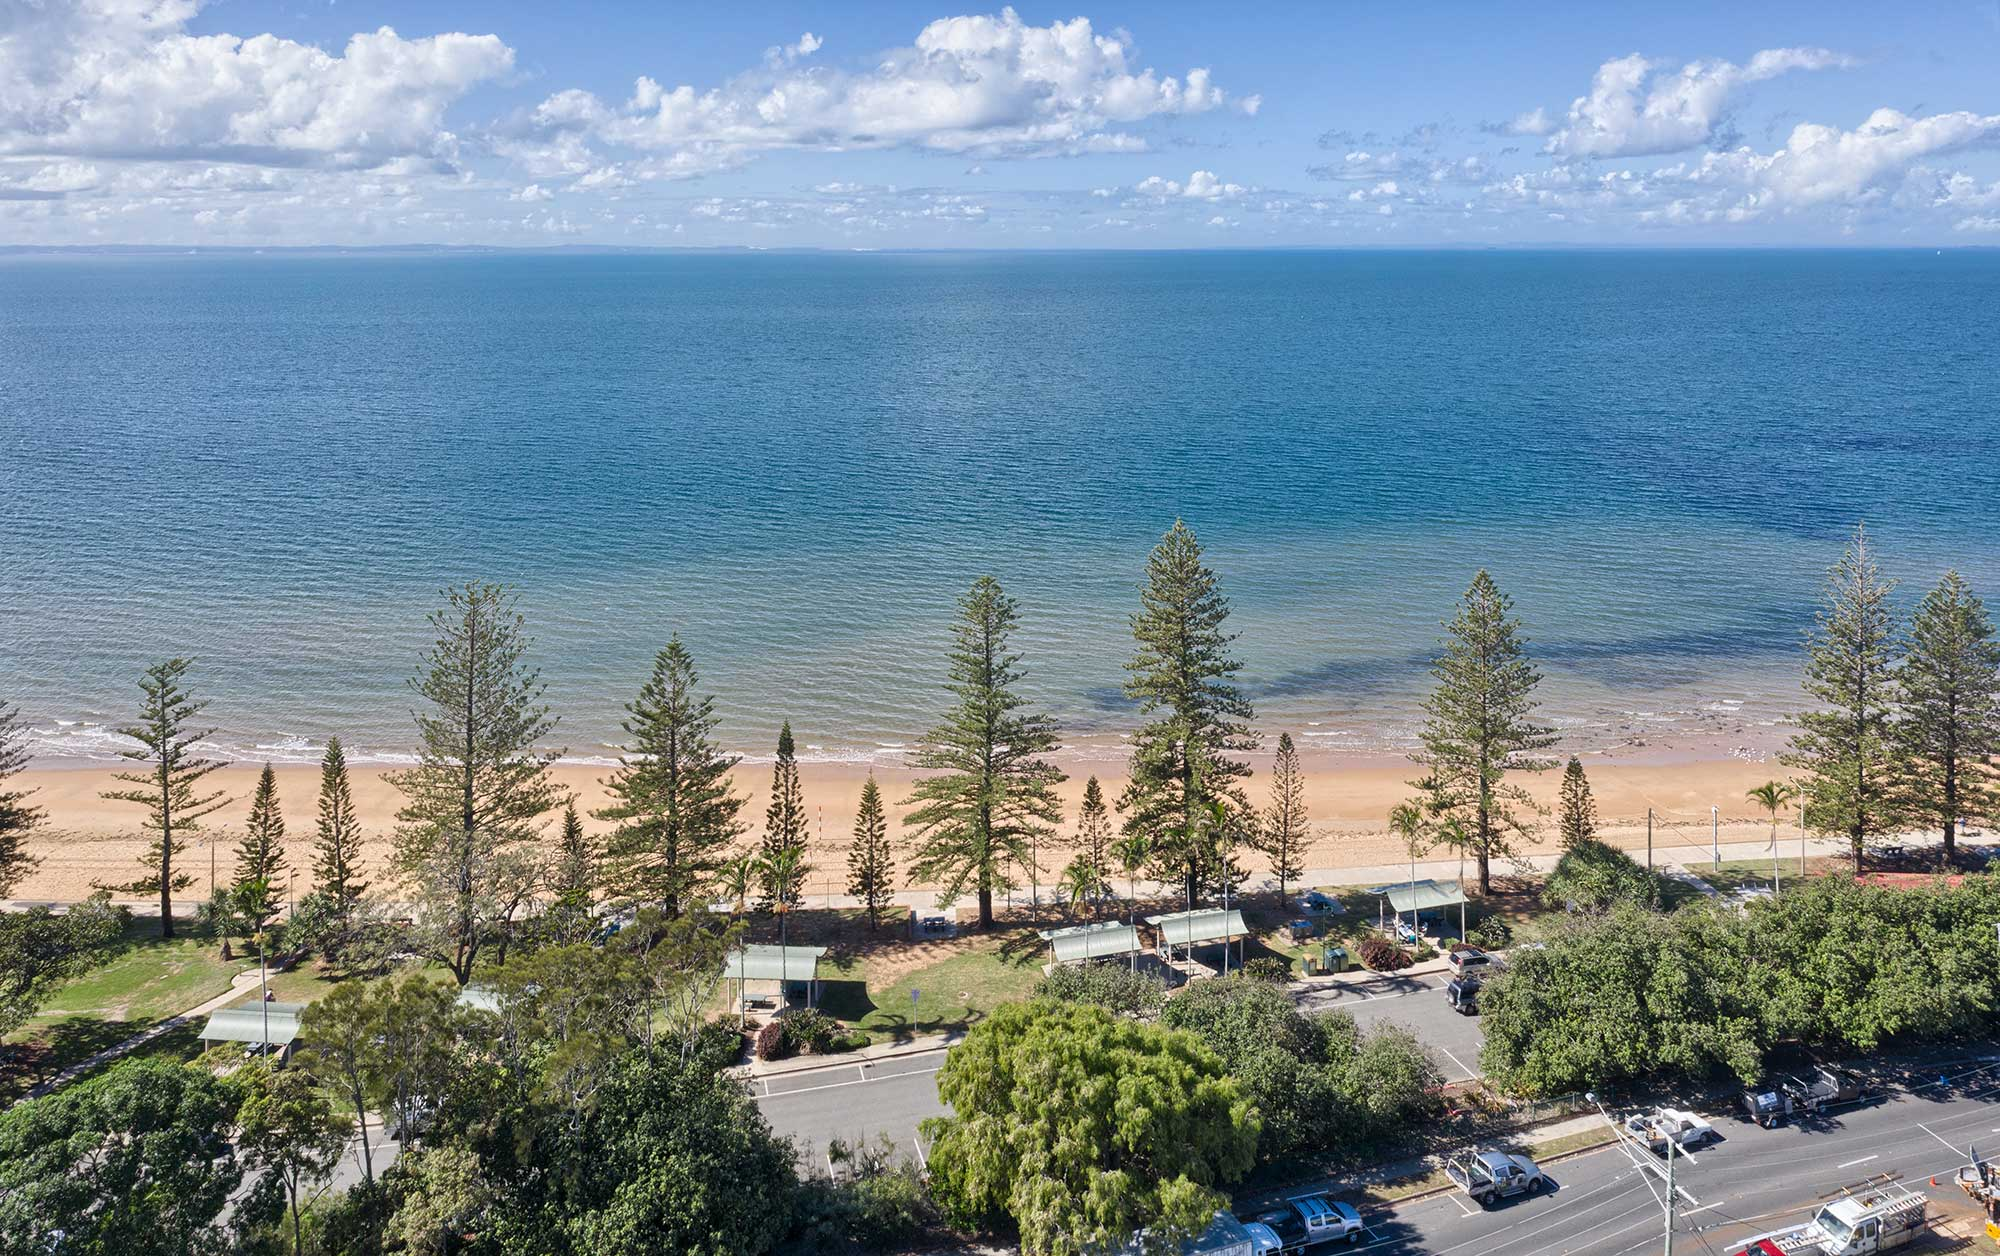 looking towards the ocean and the beach  at 37 Marine Parade, Redcliffe